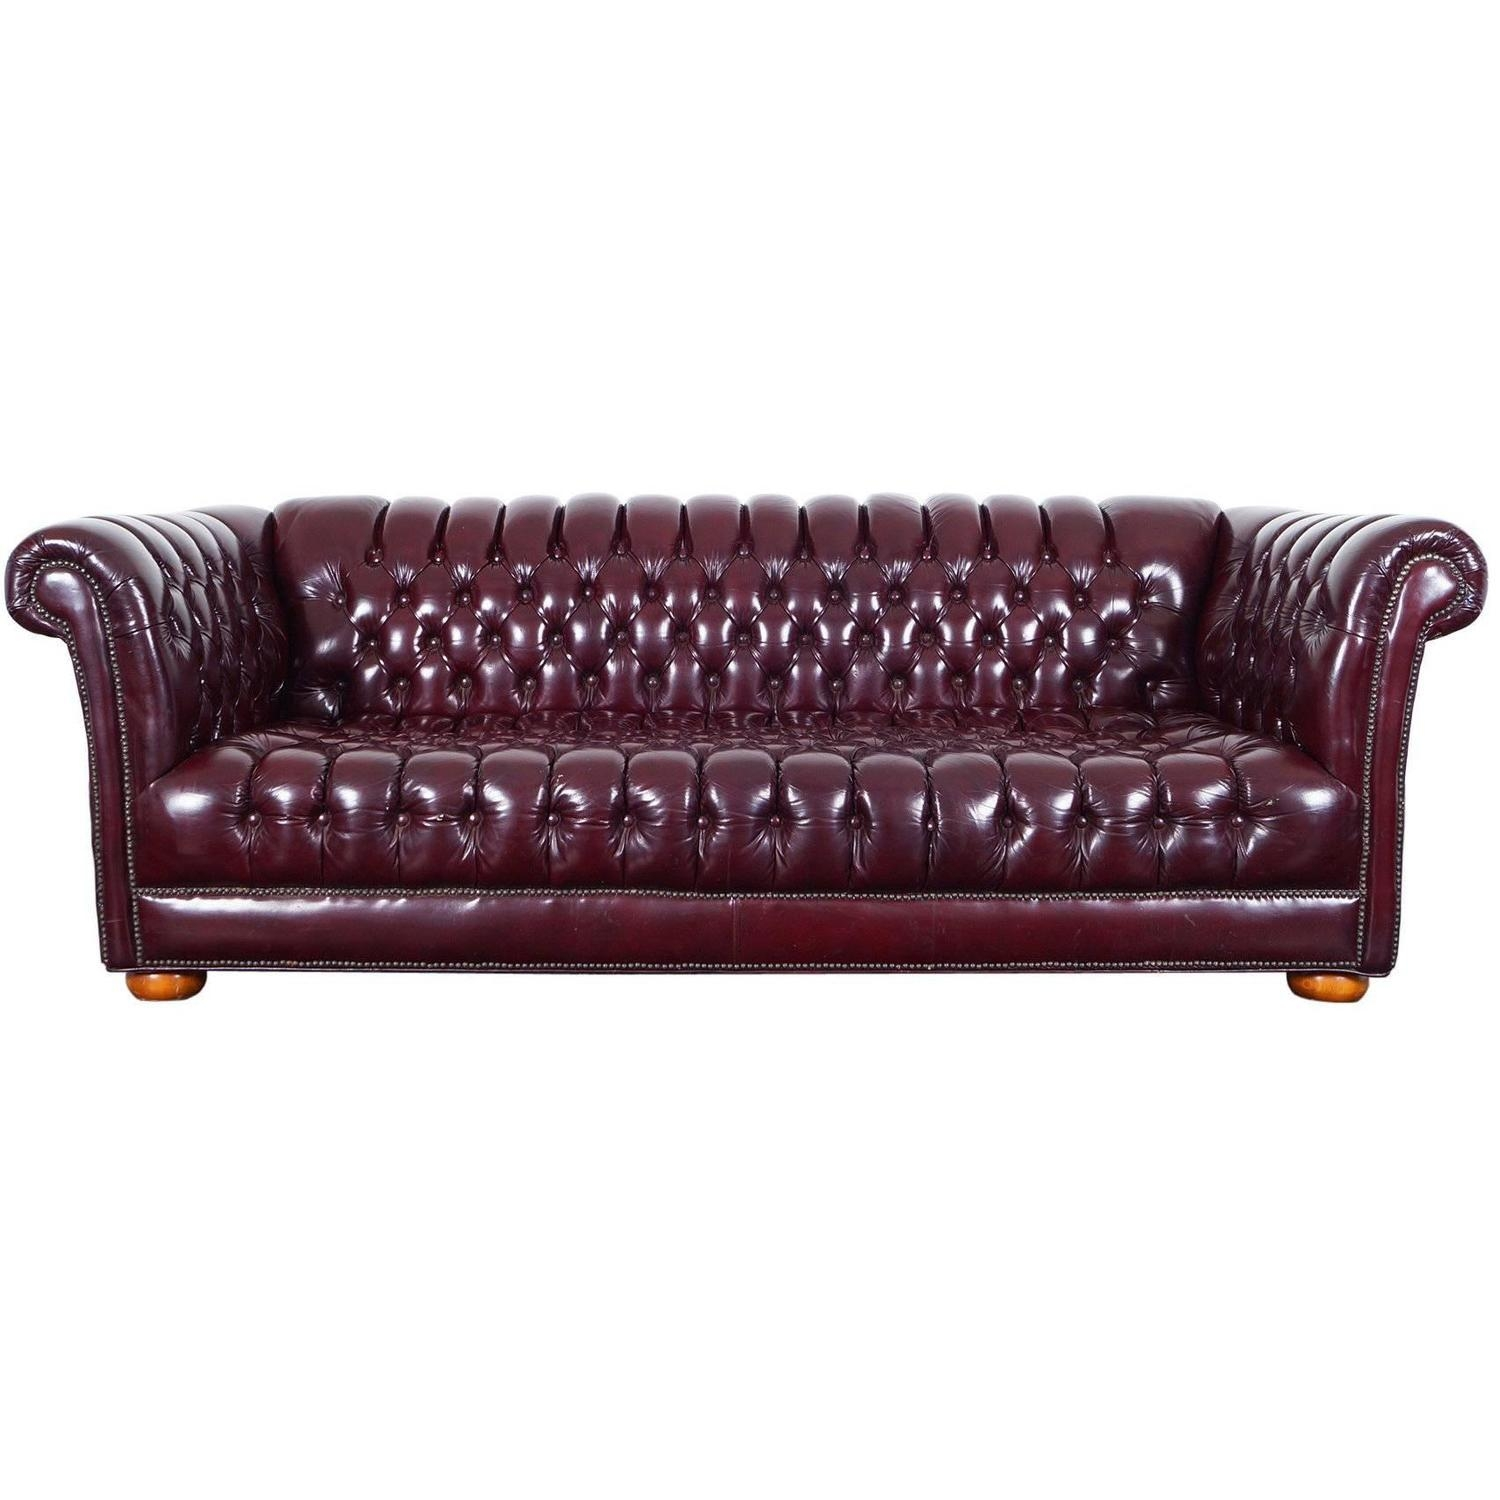 Vintage Burgundy Leather Chesterfield Sofa For Sale At 1Stdibs In Vintage Chesterfield Sofas (View 12 of 20)